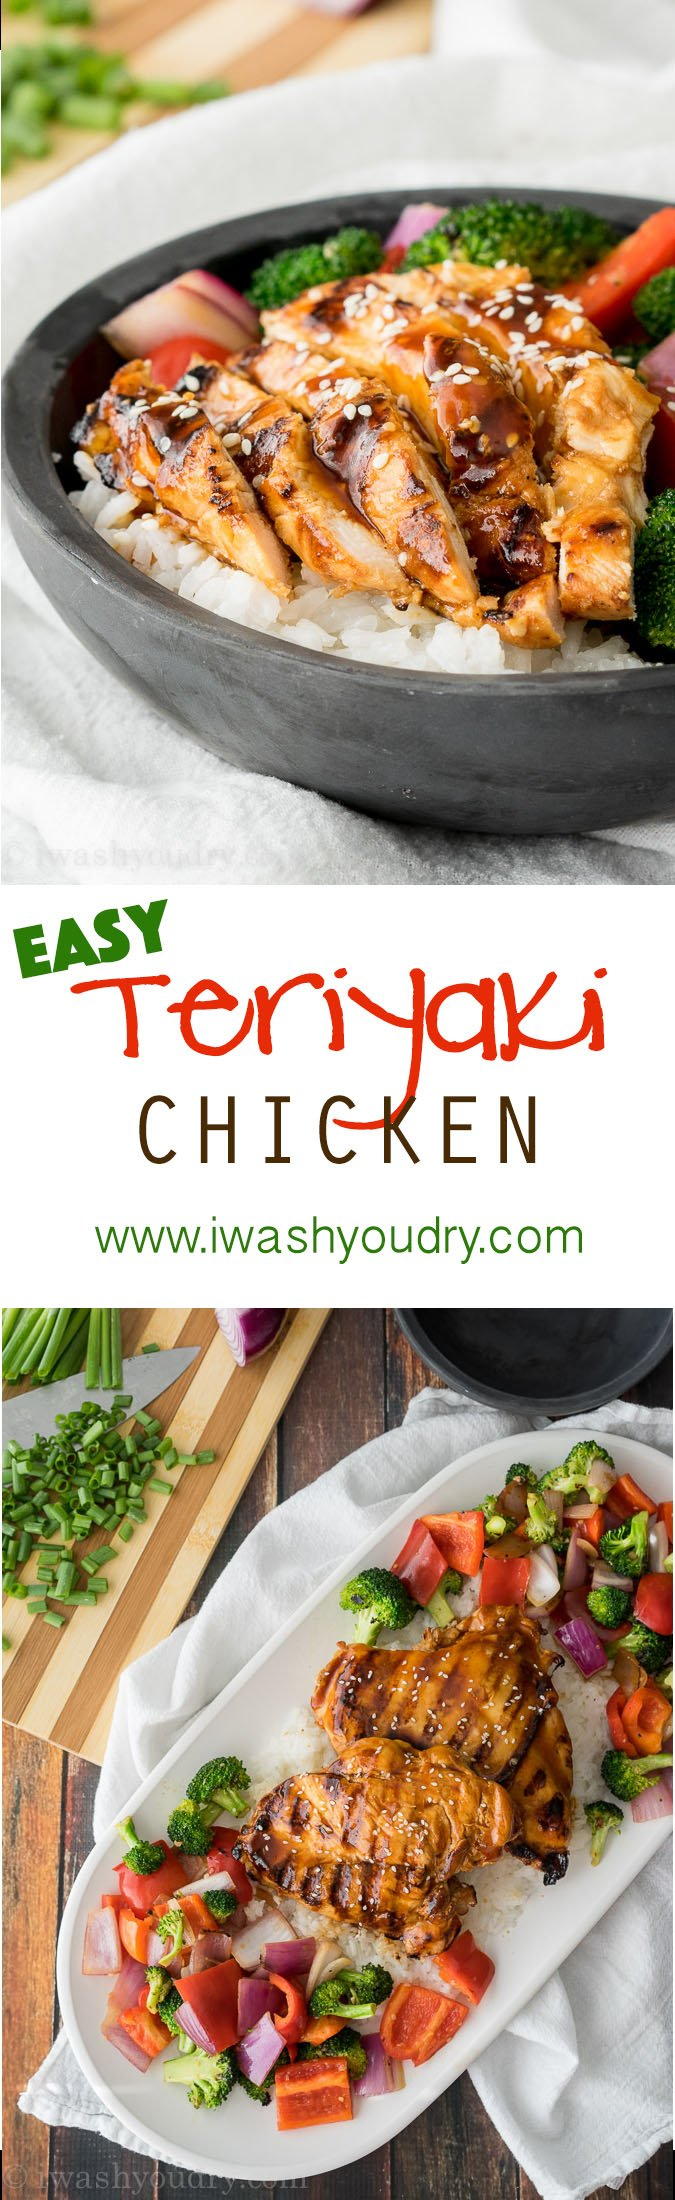 Super Easy Teriyaki Chicken with a killer marinade! My family loved this recipe, definitely a keeper!